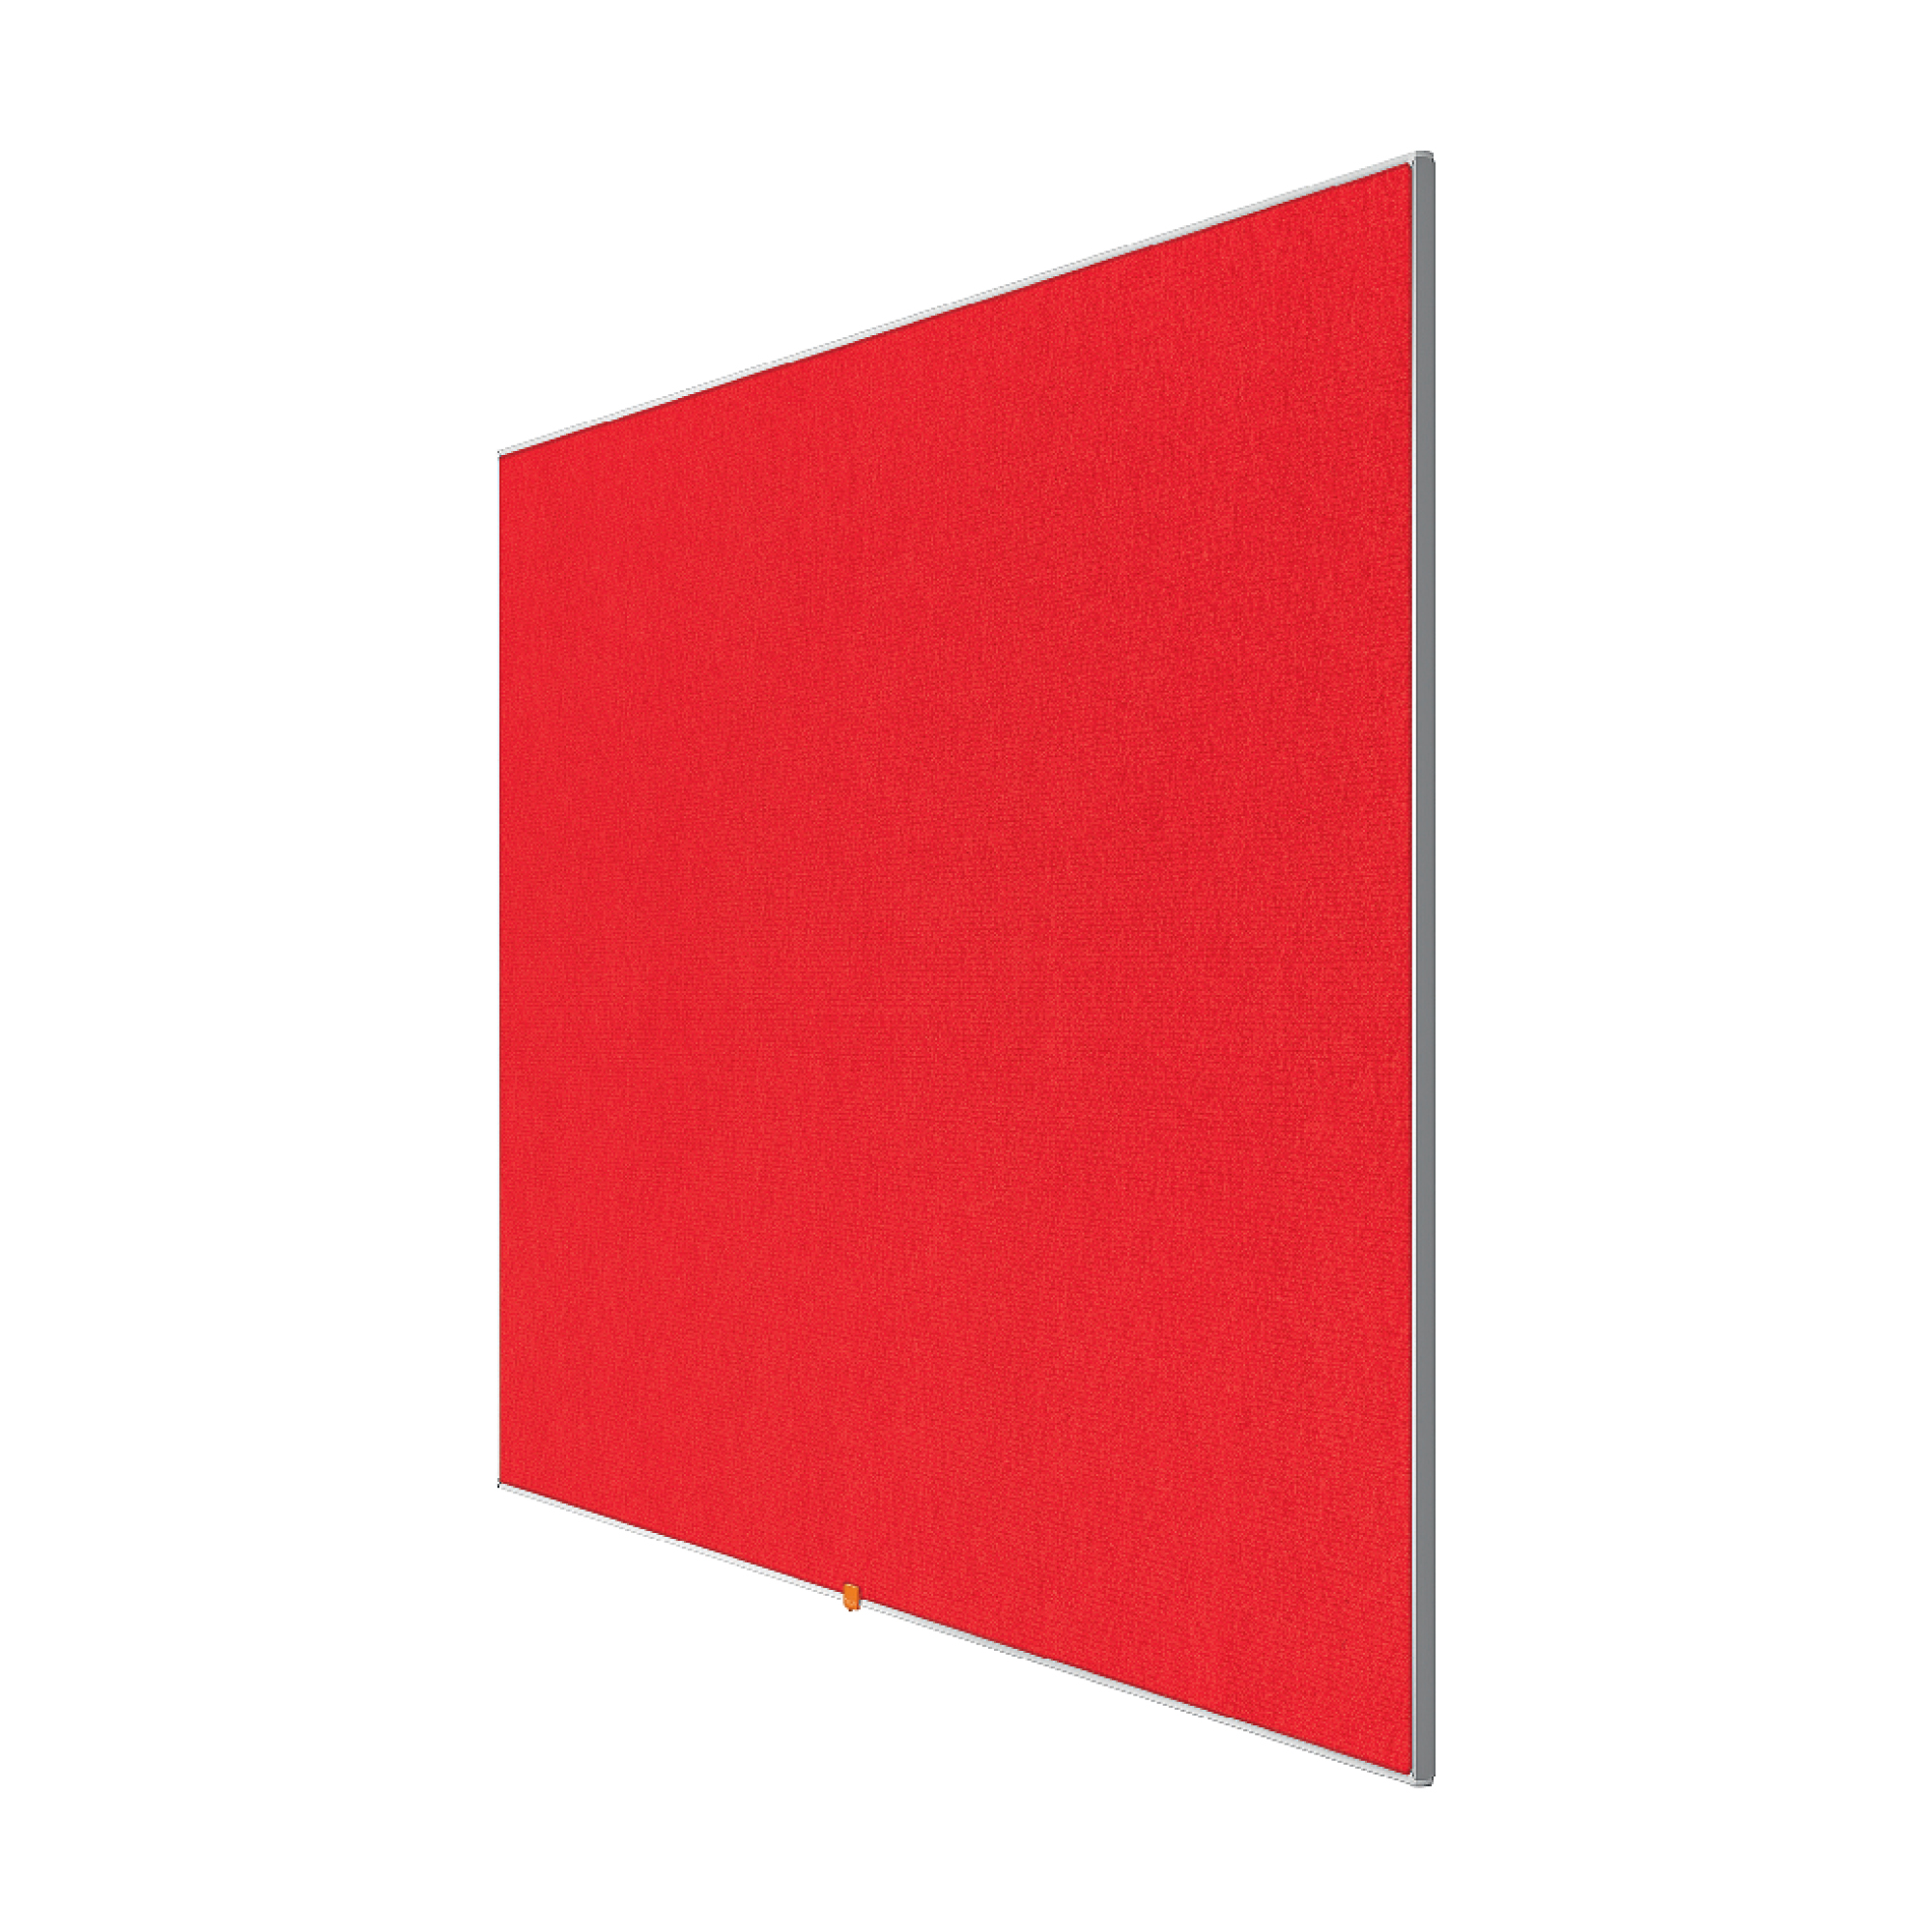 Bulletin boards or accessories Nobo 85 inch Widescreen Felt Board 1880x1060mm Red Ref 1905313